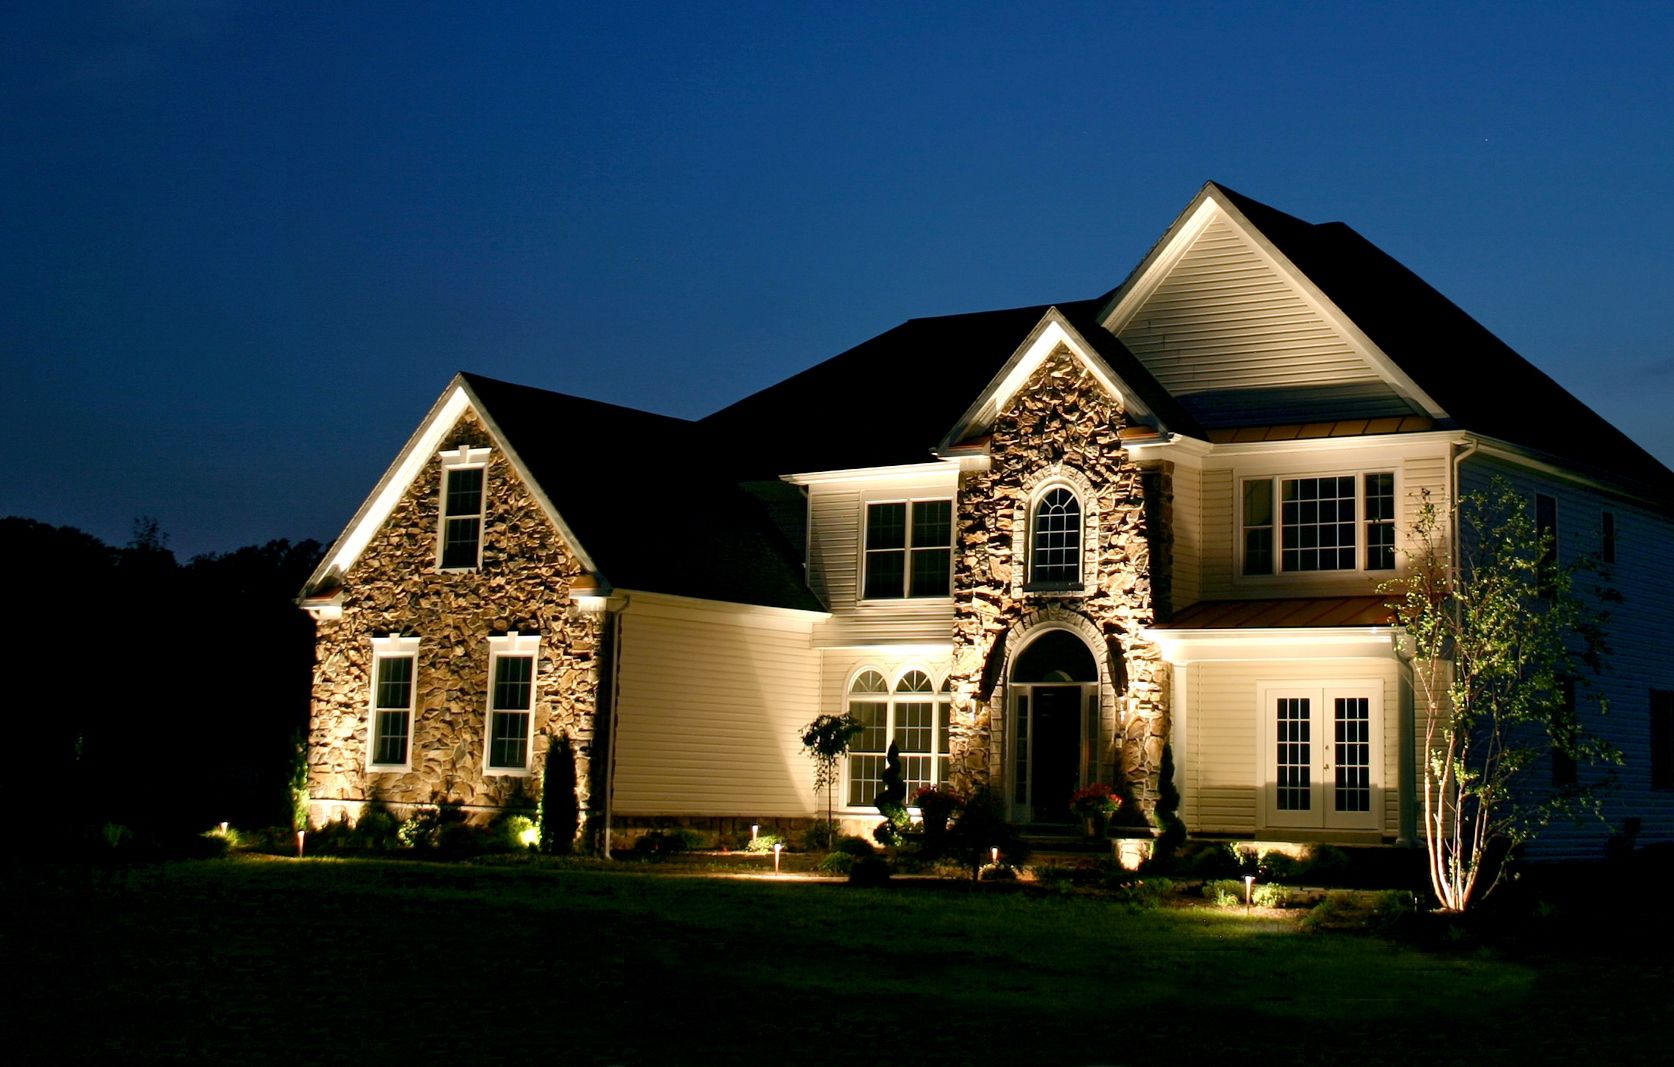 Captivating Tips For Choosing And Installing Landscape Lighting